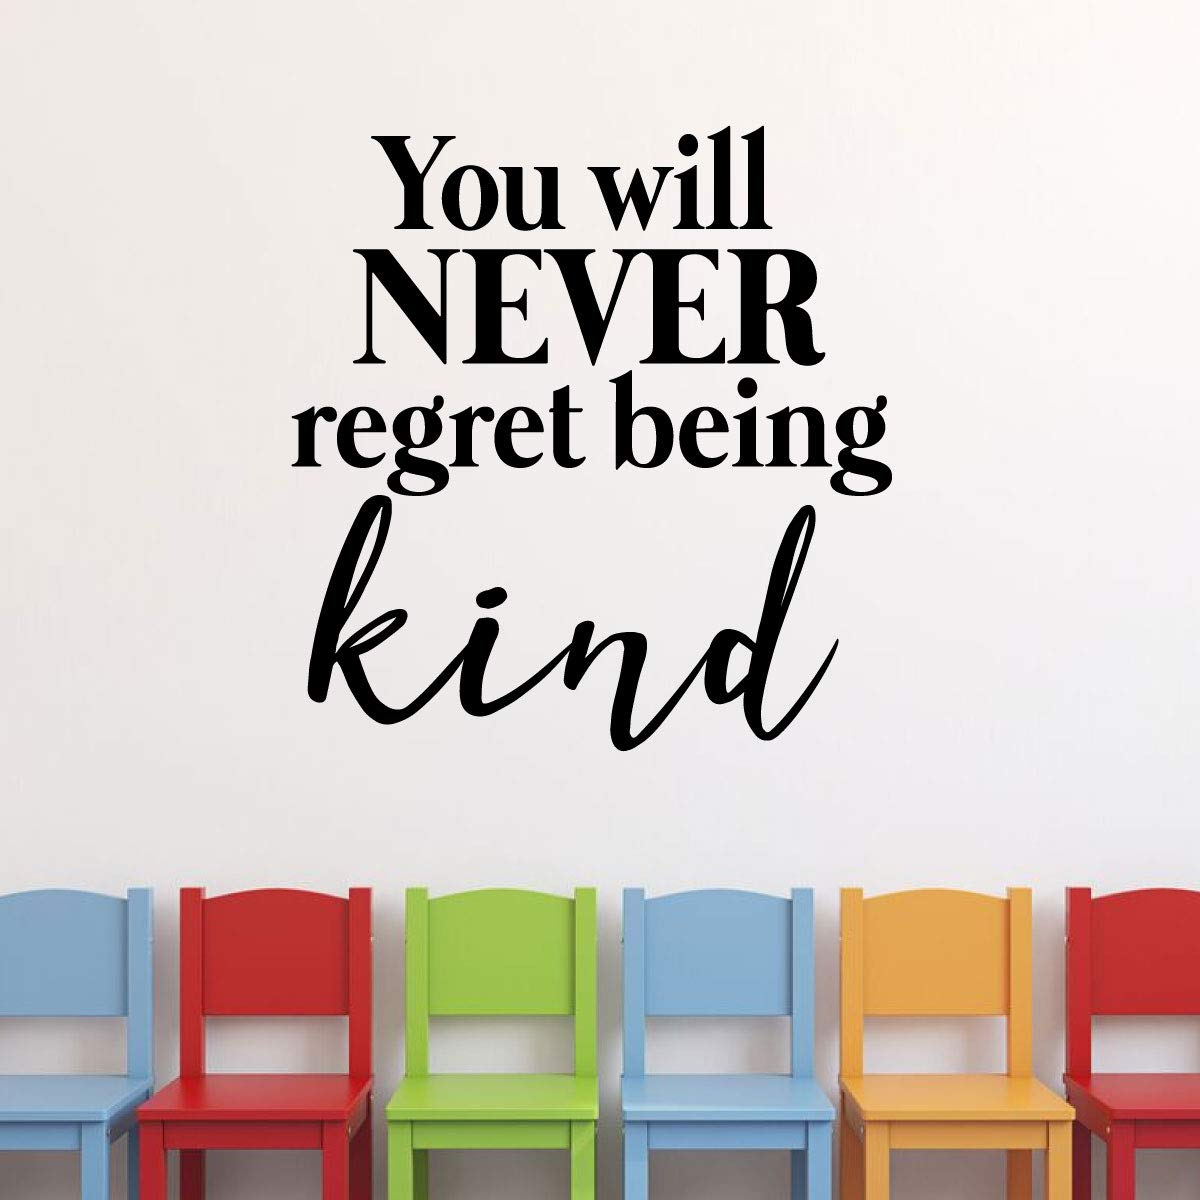 You Will Never Regret Being Kind Bedroom Kindness Quote Vinyl Wall Decal for Home Playroom or Classroom Decorations